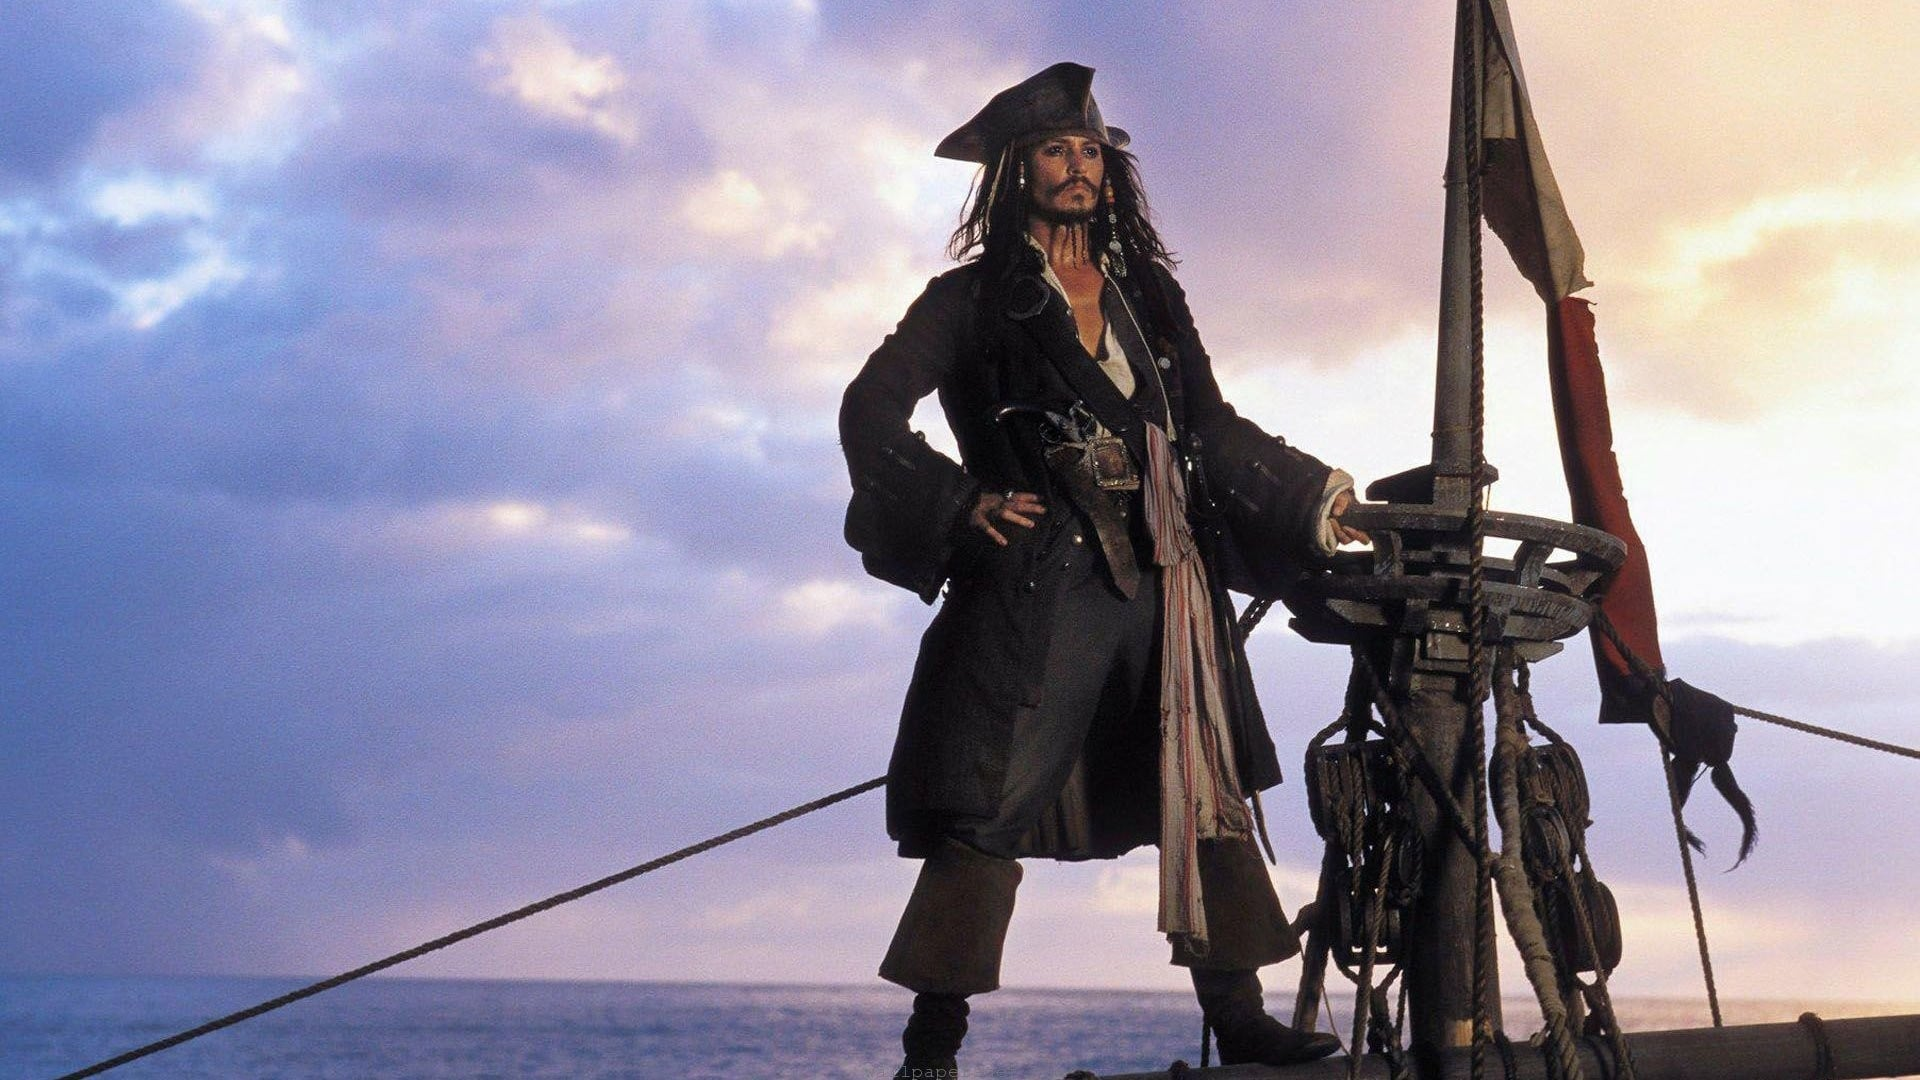 Pirates of the Caribbean: The Curse of the Black Pearl (2018)